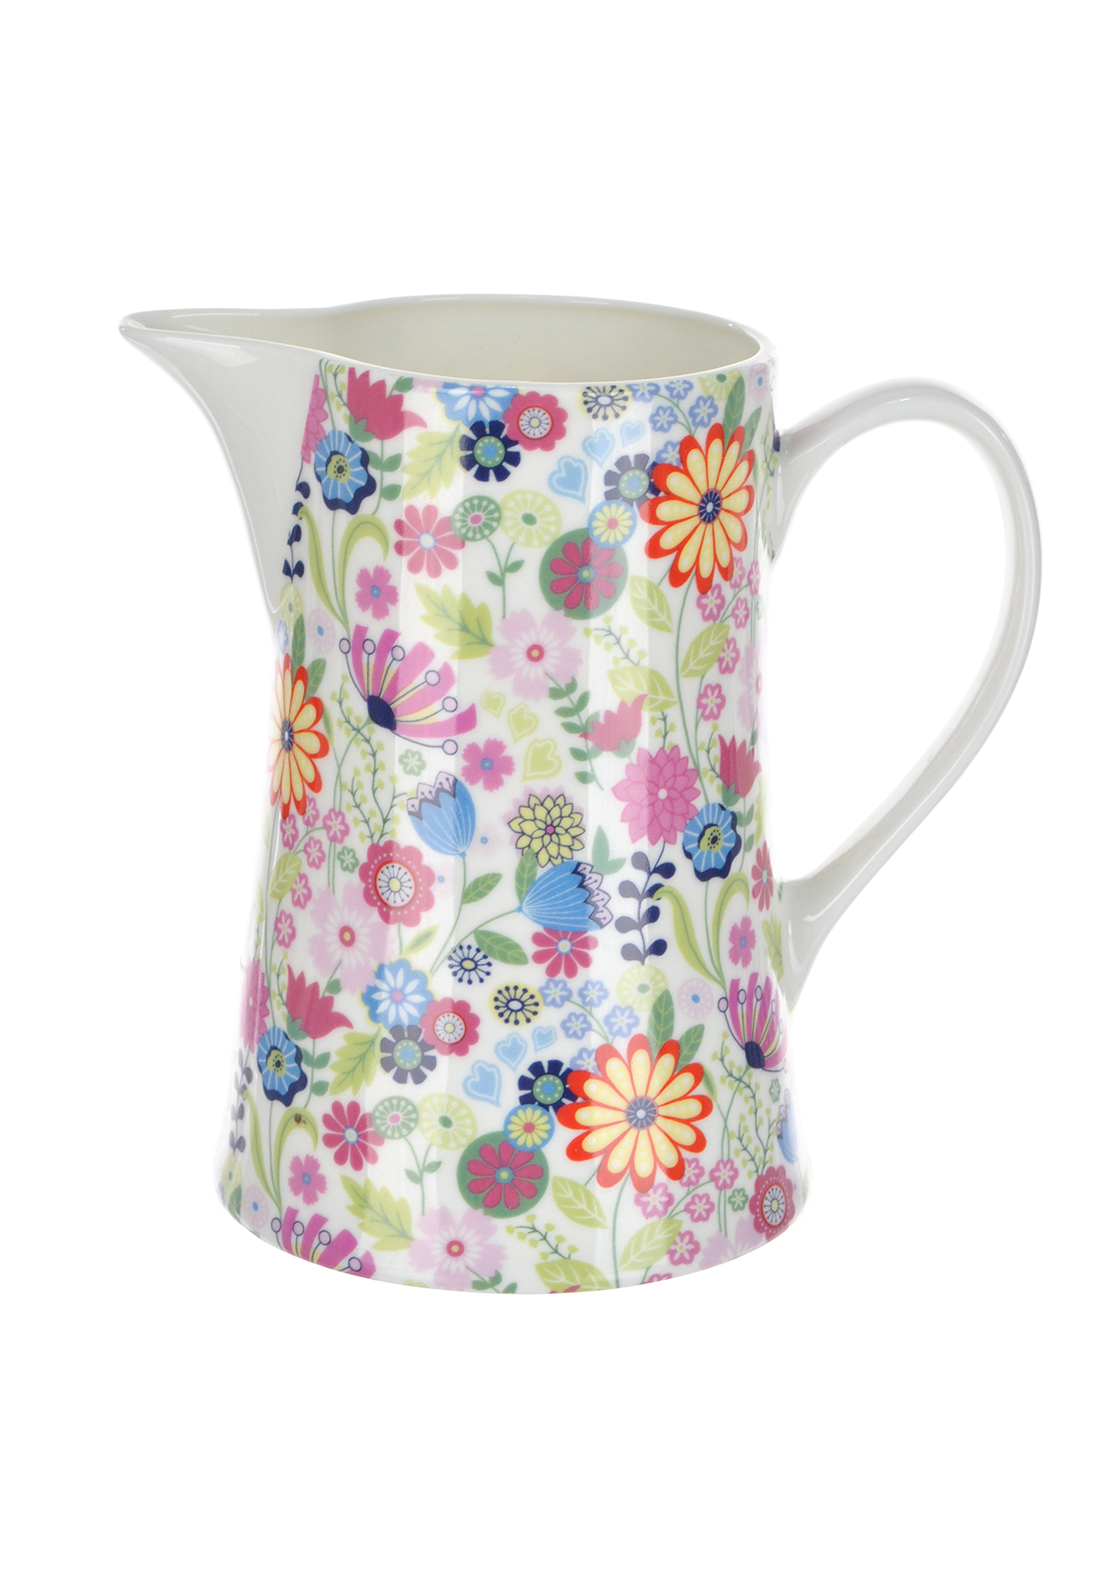 Shannon Bridge Ireland Ditsy Flowery Pint Jug, White/Multi floral Design